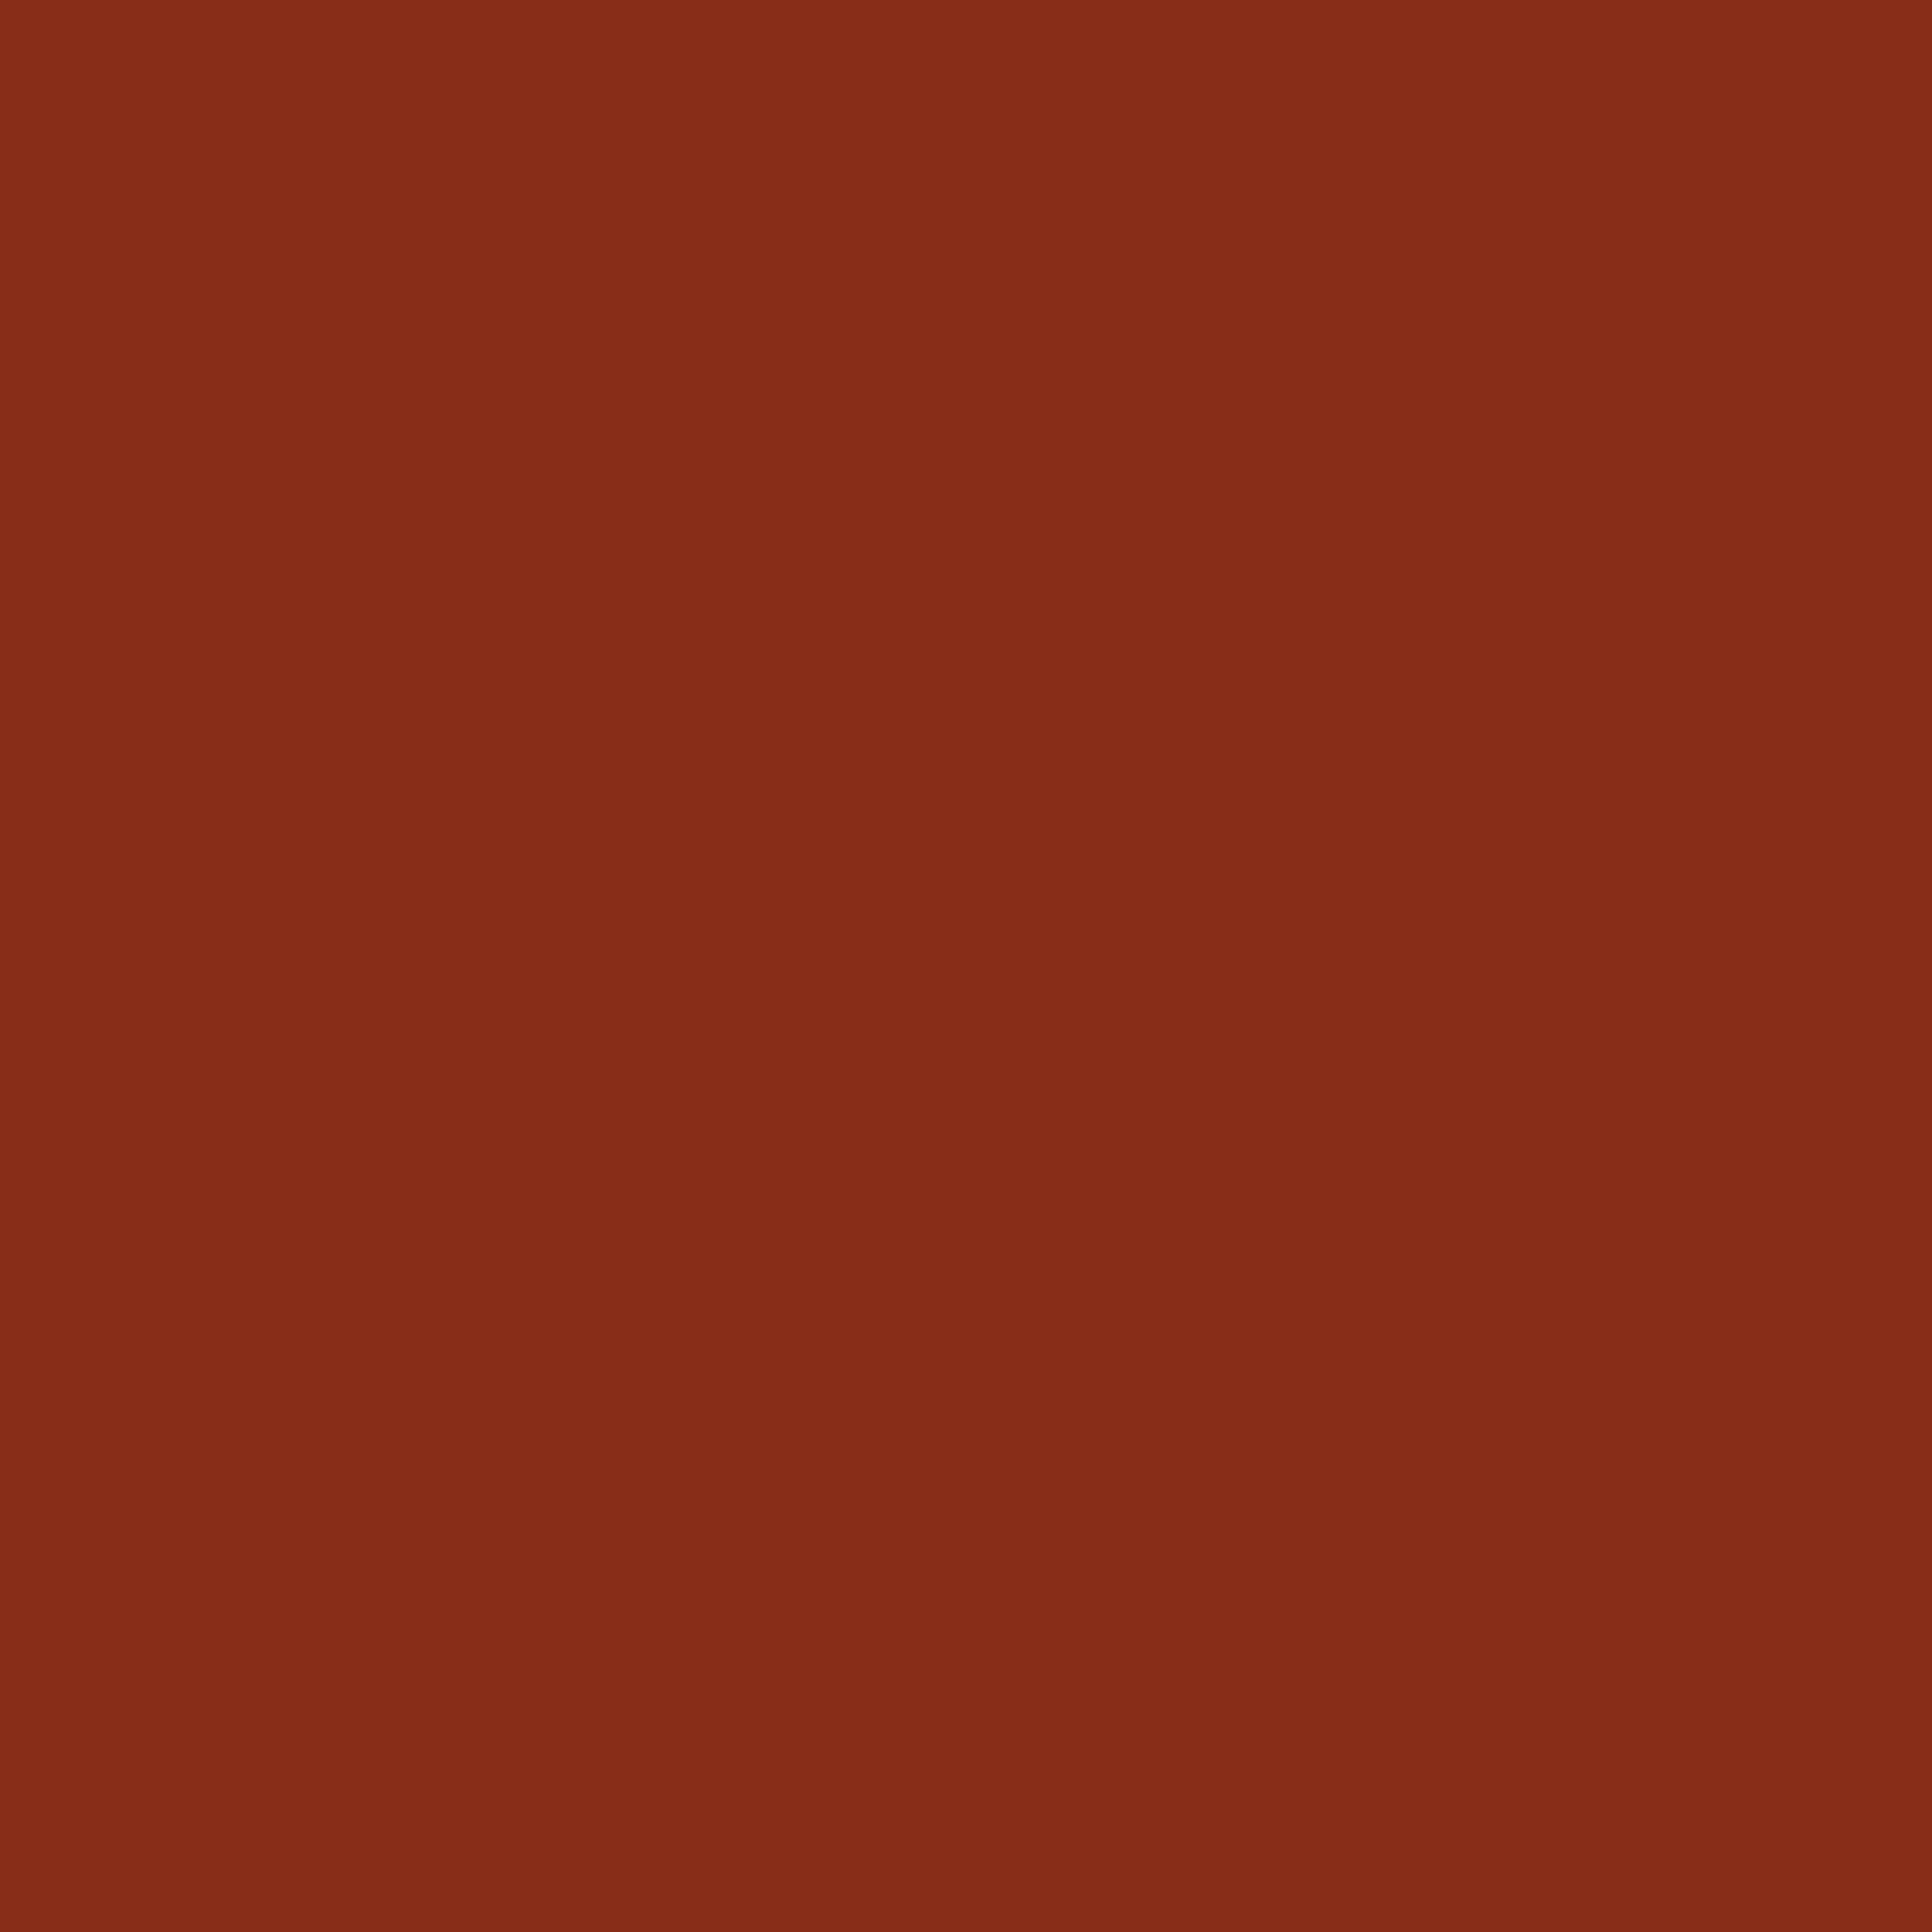 2732x2732 Sienna Solid Color Background